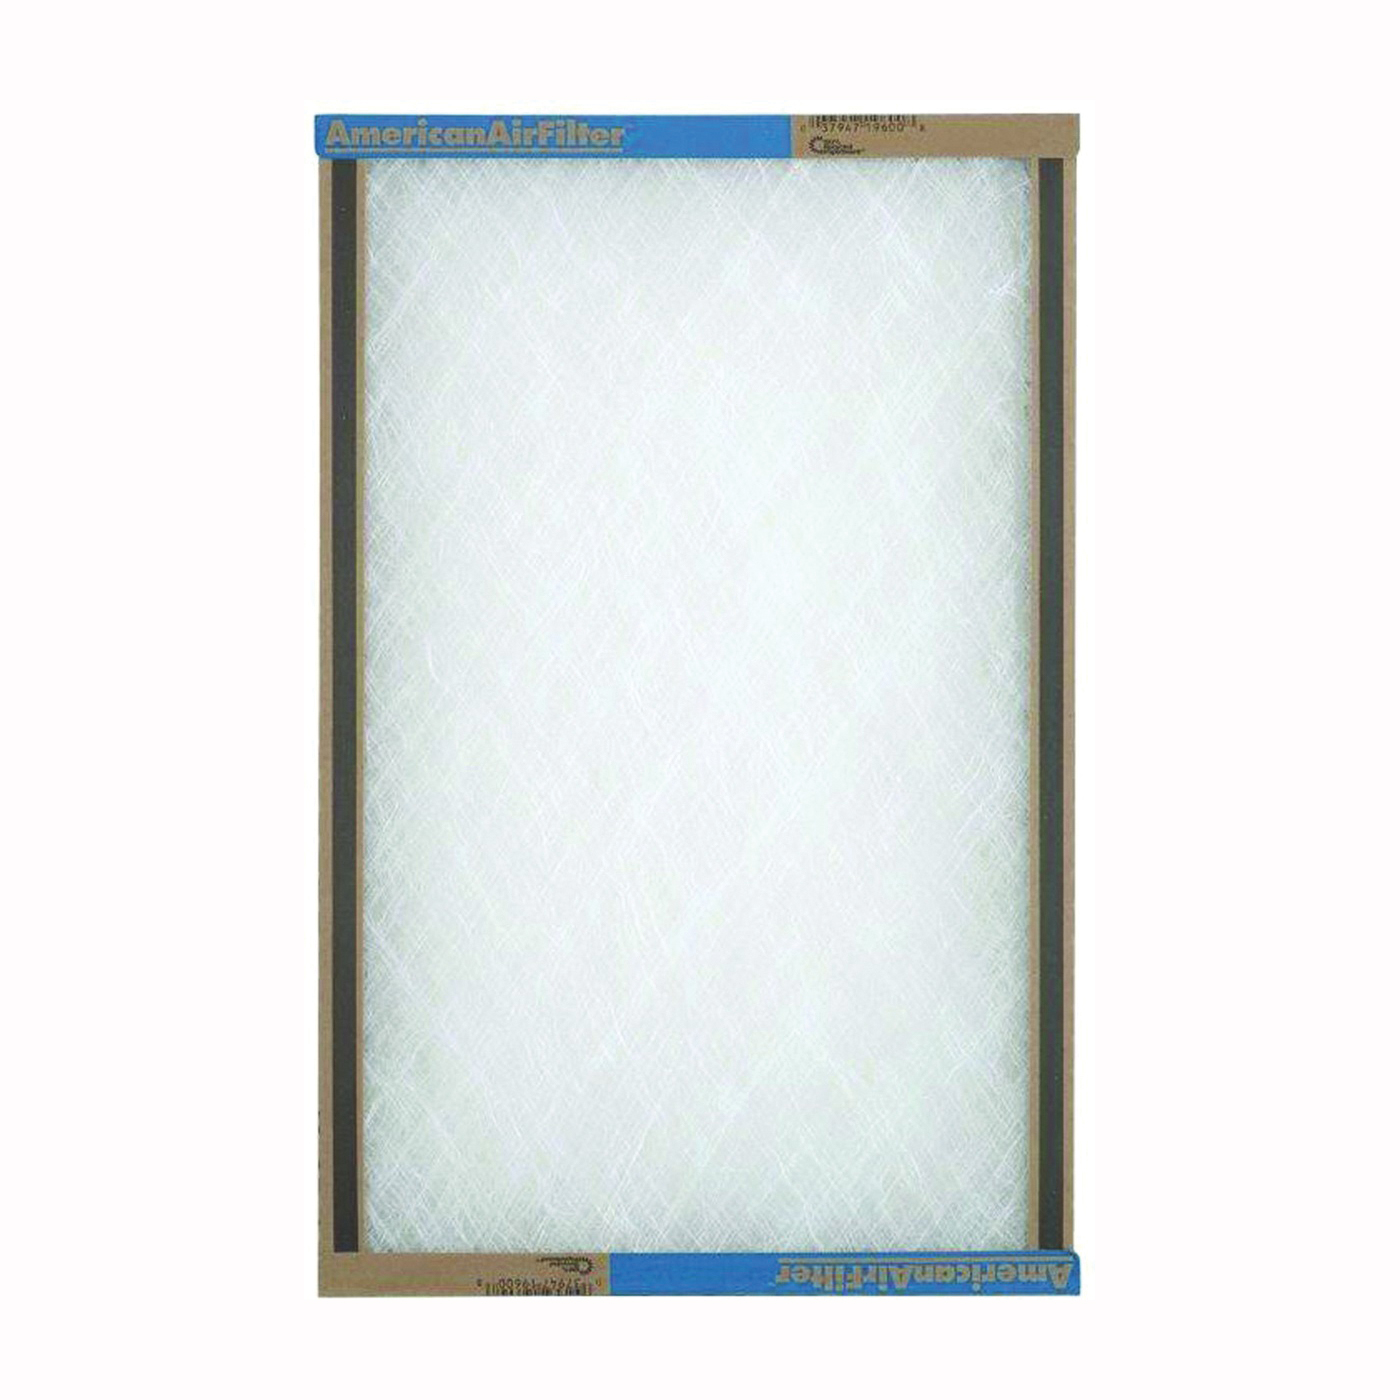 Picture of AAF 118181 Air Filter, 18 in L, 18 in W